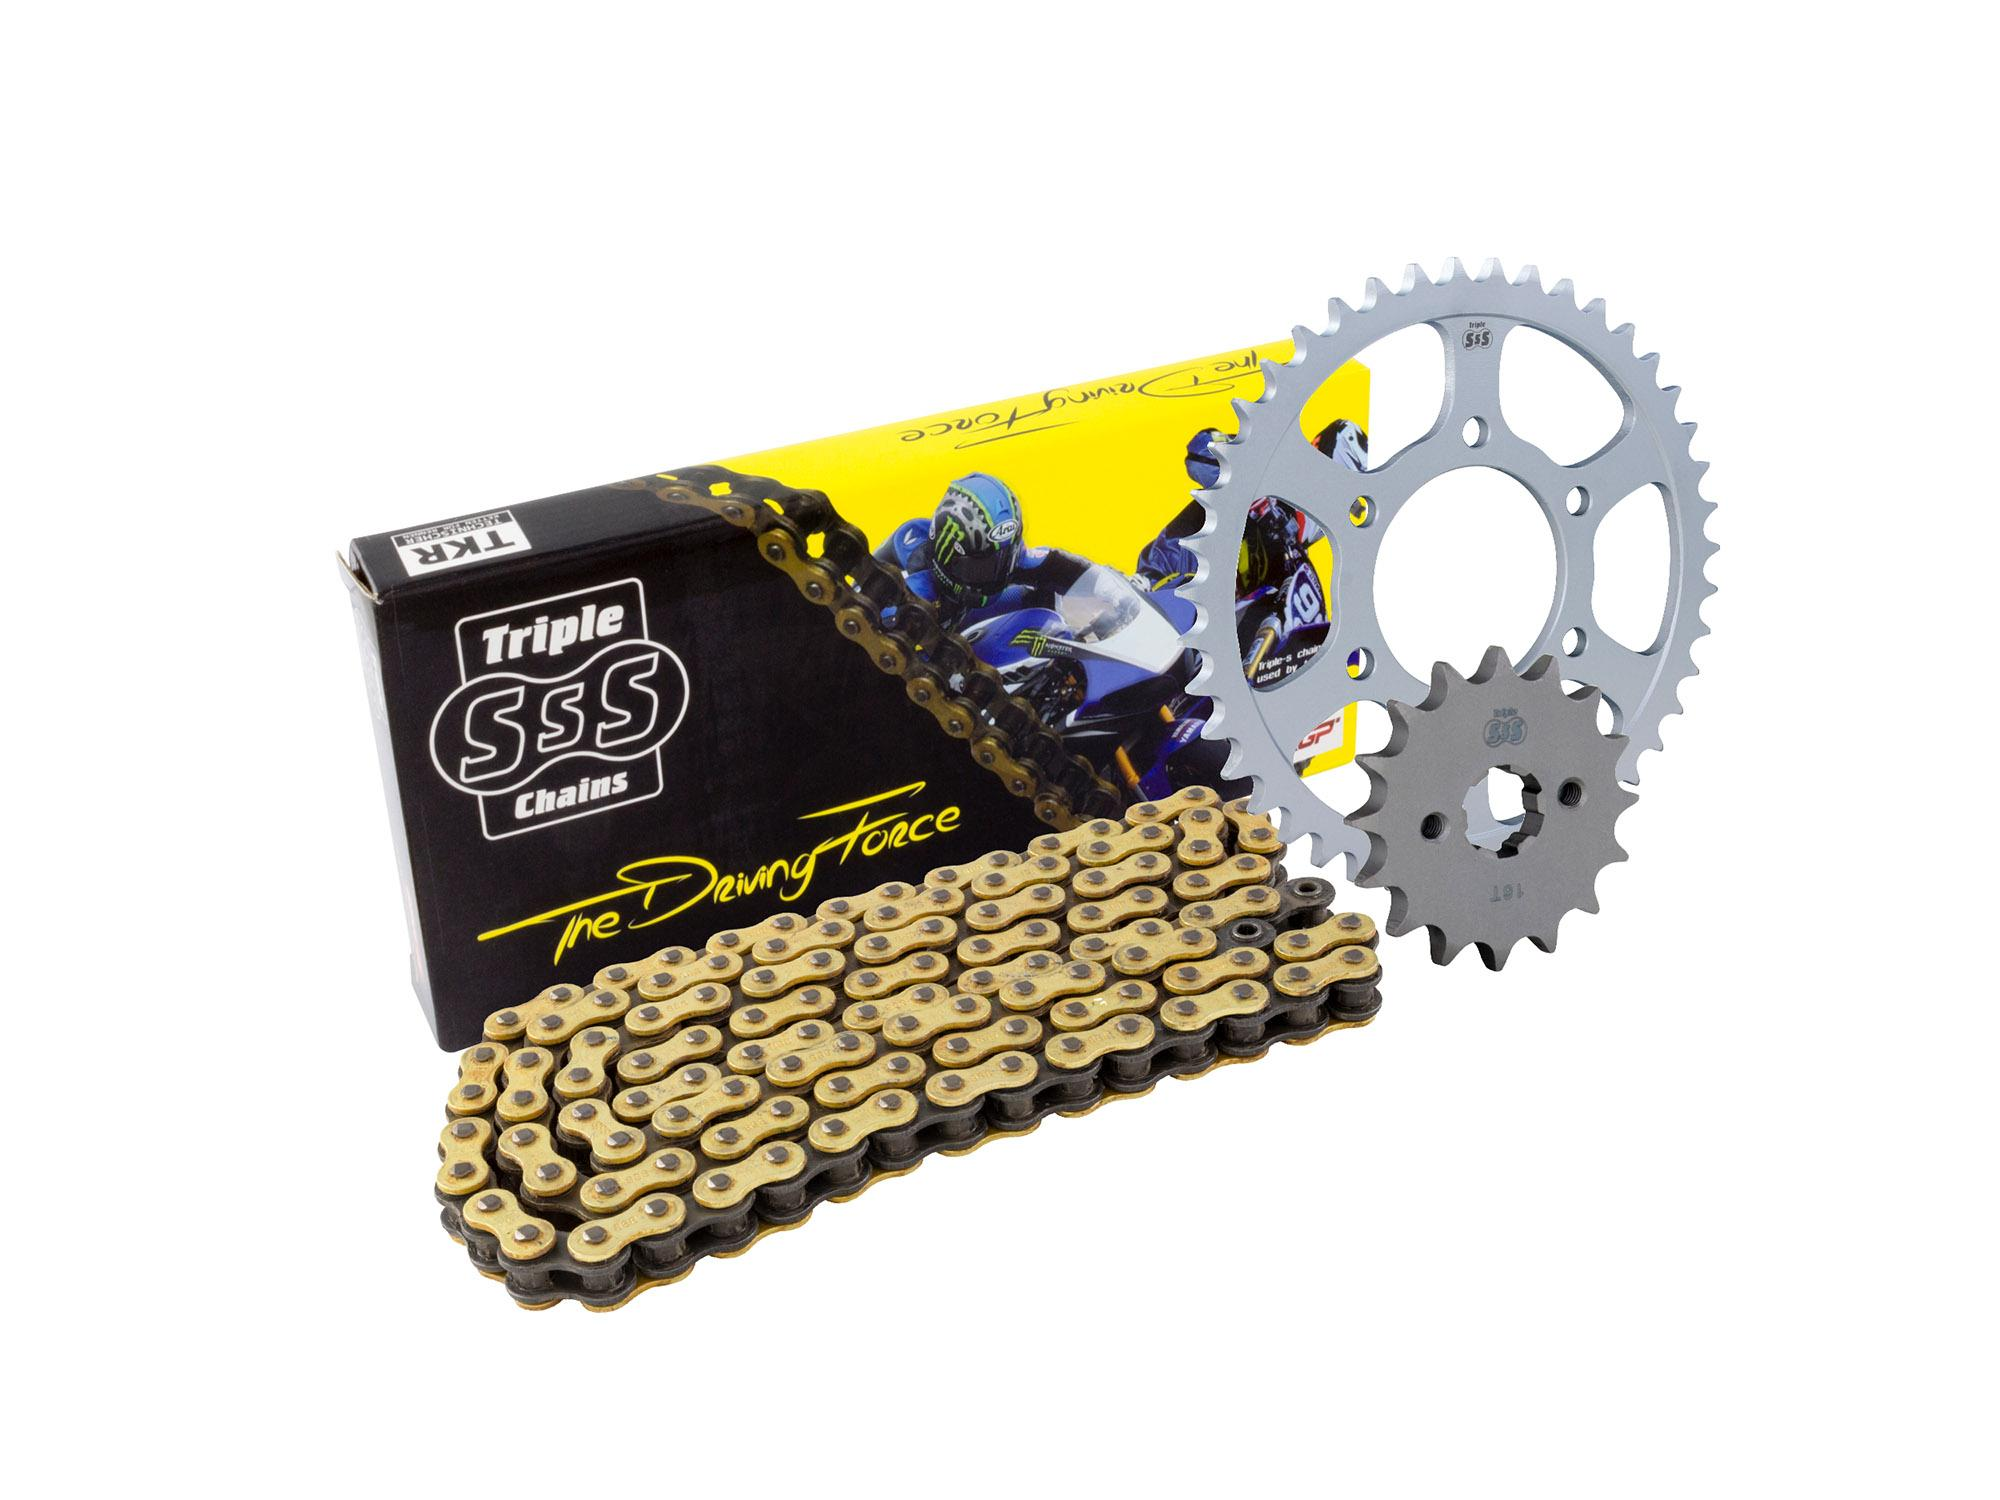 Honda VT600 C/CD/CD2 Shadow (VLX) 99-07 Chain & Sprocket Kit: 16T Front, 44T Rear, HD O-Ring Gold Chain 525H 120Link